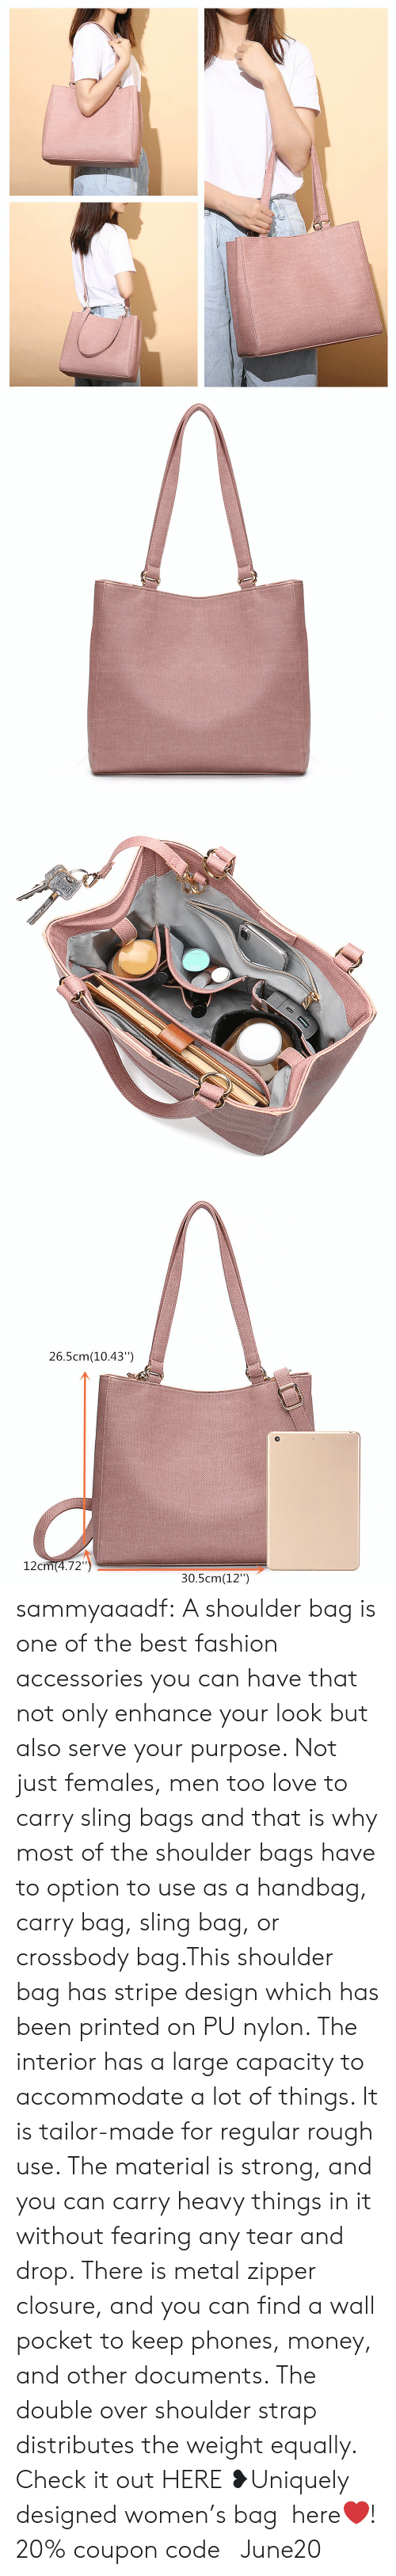 "Fashion, Love, and Money: 26.5cm(10.43"")  12cm(4.72"")  30.5cm(12"") sammyaaadf: A shoulder bag is one of the best fashion accessories you can have that not only enhance your look but also serve your purpose. Not just females, men too love to carry sling bags and that is why most of the shoulder bags have to option to use as a handbag, carry bag, sling bag, or crossbody bag.This shoulder bag has stripe design which has been printed on PU nylon. The interior has a large capacity to accommodate a lot of things. It is tailor-made for regular rough use. The material is strong, and you can carry heavy things in it without fearing any tear and drop. There is metal zipper closure, and you can find a wall pocket to keep phones, money, and other documents. The double over shoulder strap distributes the weight equally.  Check it out HERE ❥Uniquely designed women's bag  here❤! 20% coupon code: June20"